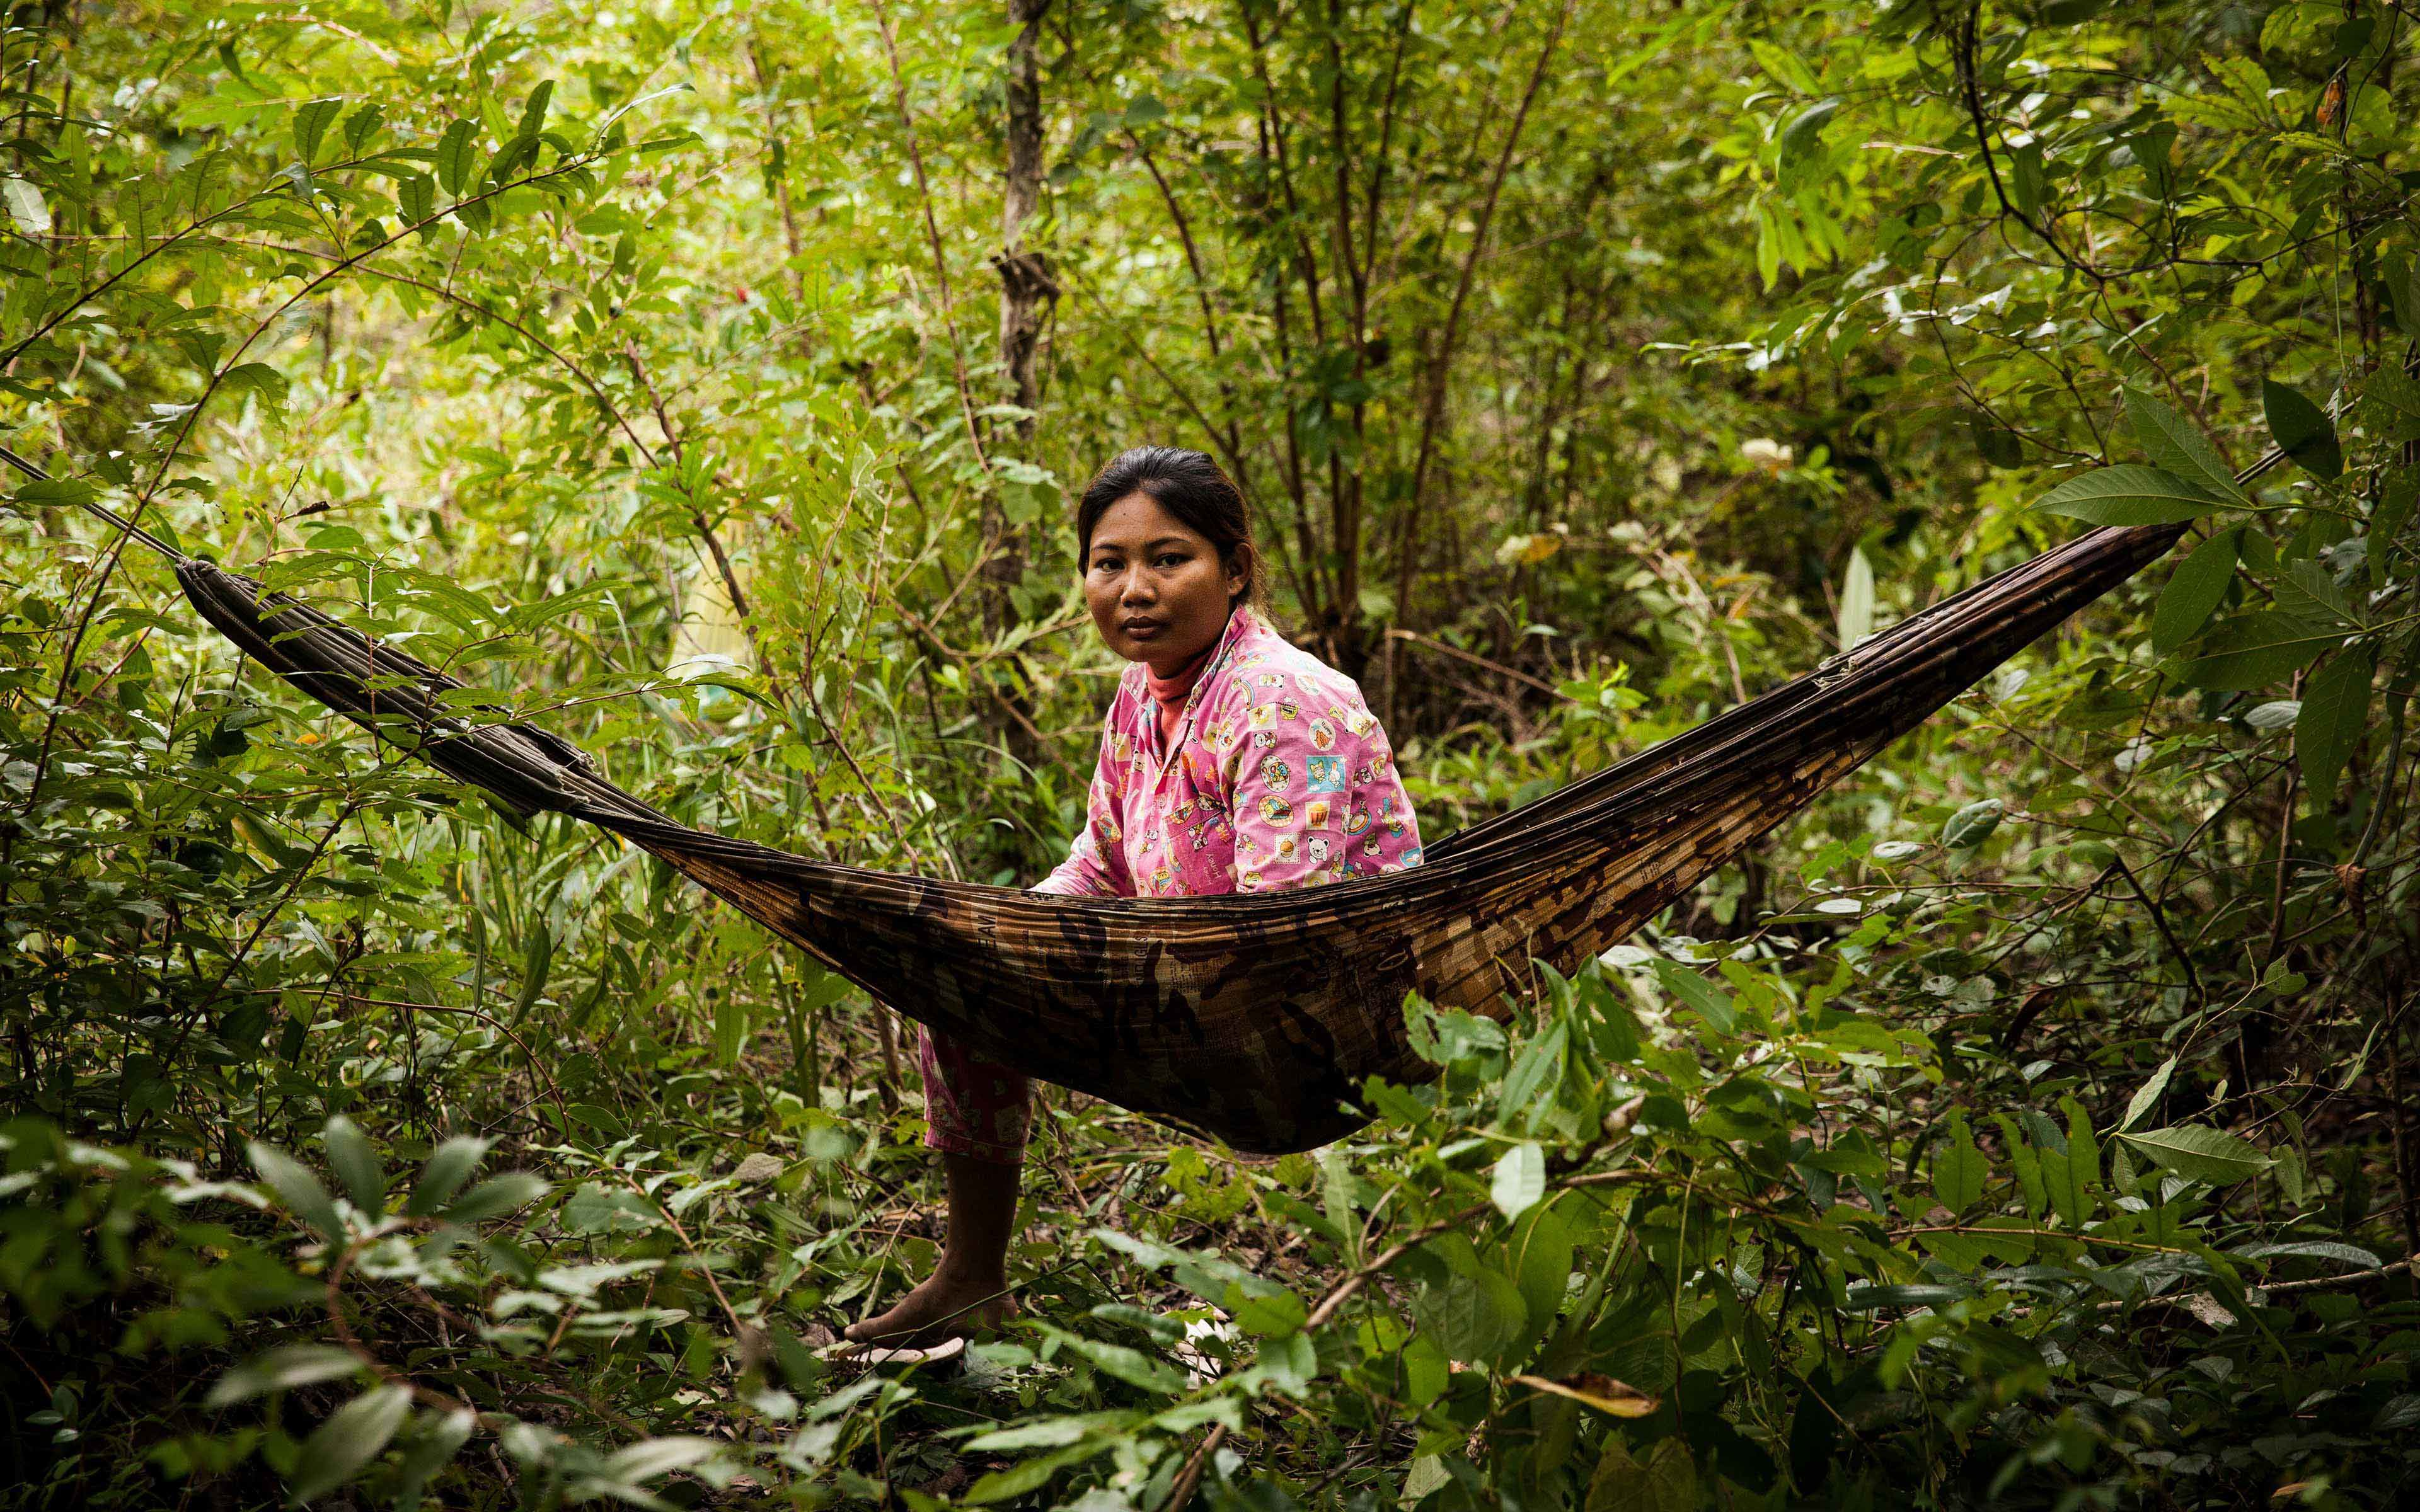 """Phorn Sopheak, 26, was sleeping in this hammock deep in the Prey Lang protected forest when someone attacked her and badly injured her foot. """"The government has laws to protect the forest,"""" she says, """"but I don't see a lot of enforcement of the laws, and I see a lot of people taking wood out of the forest … people are cutting down the trees."""""""